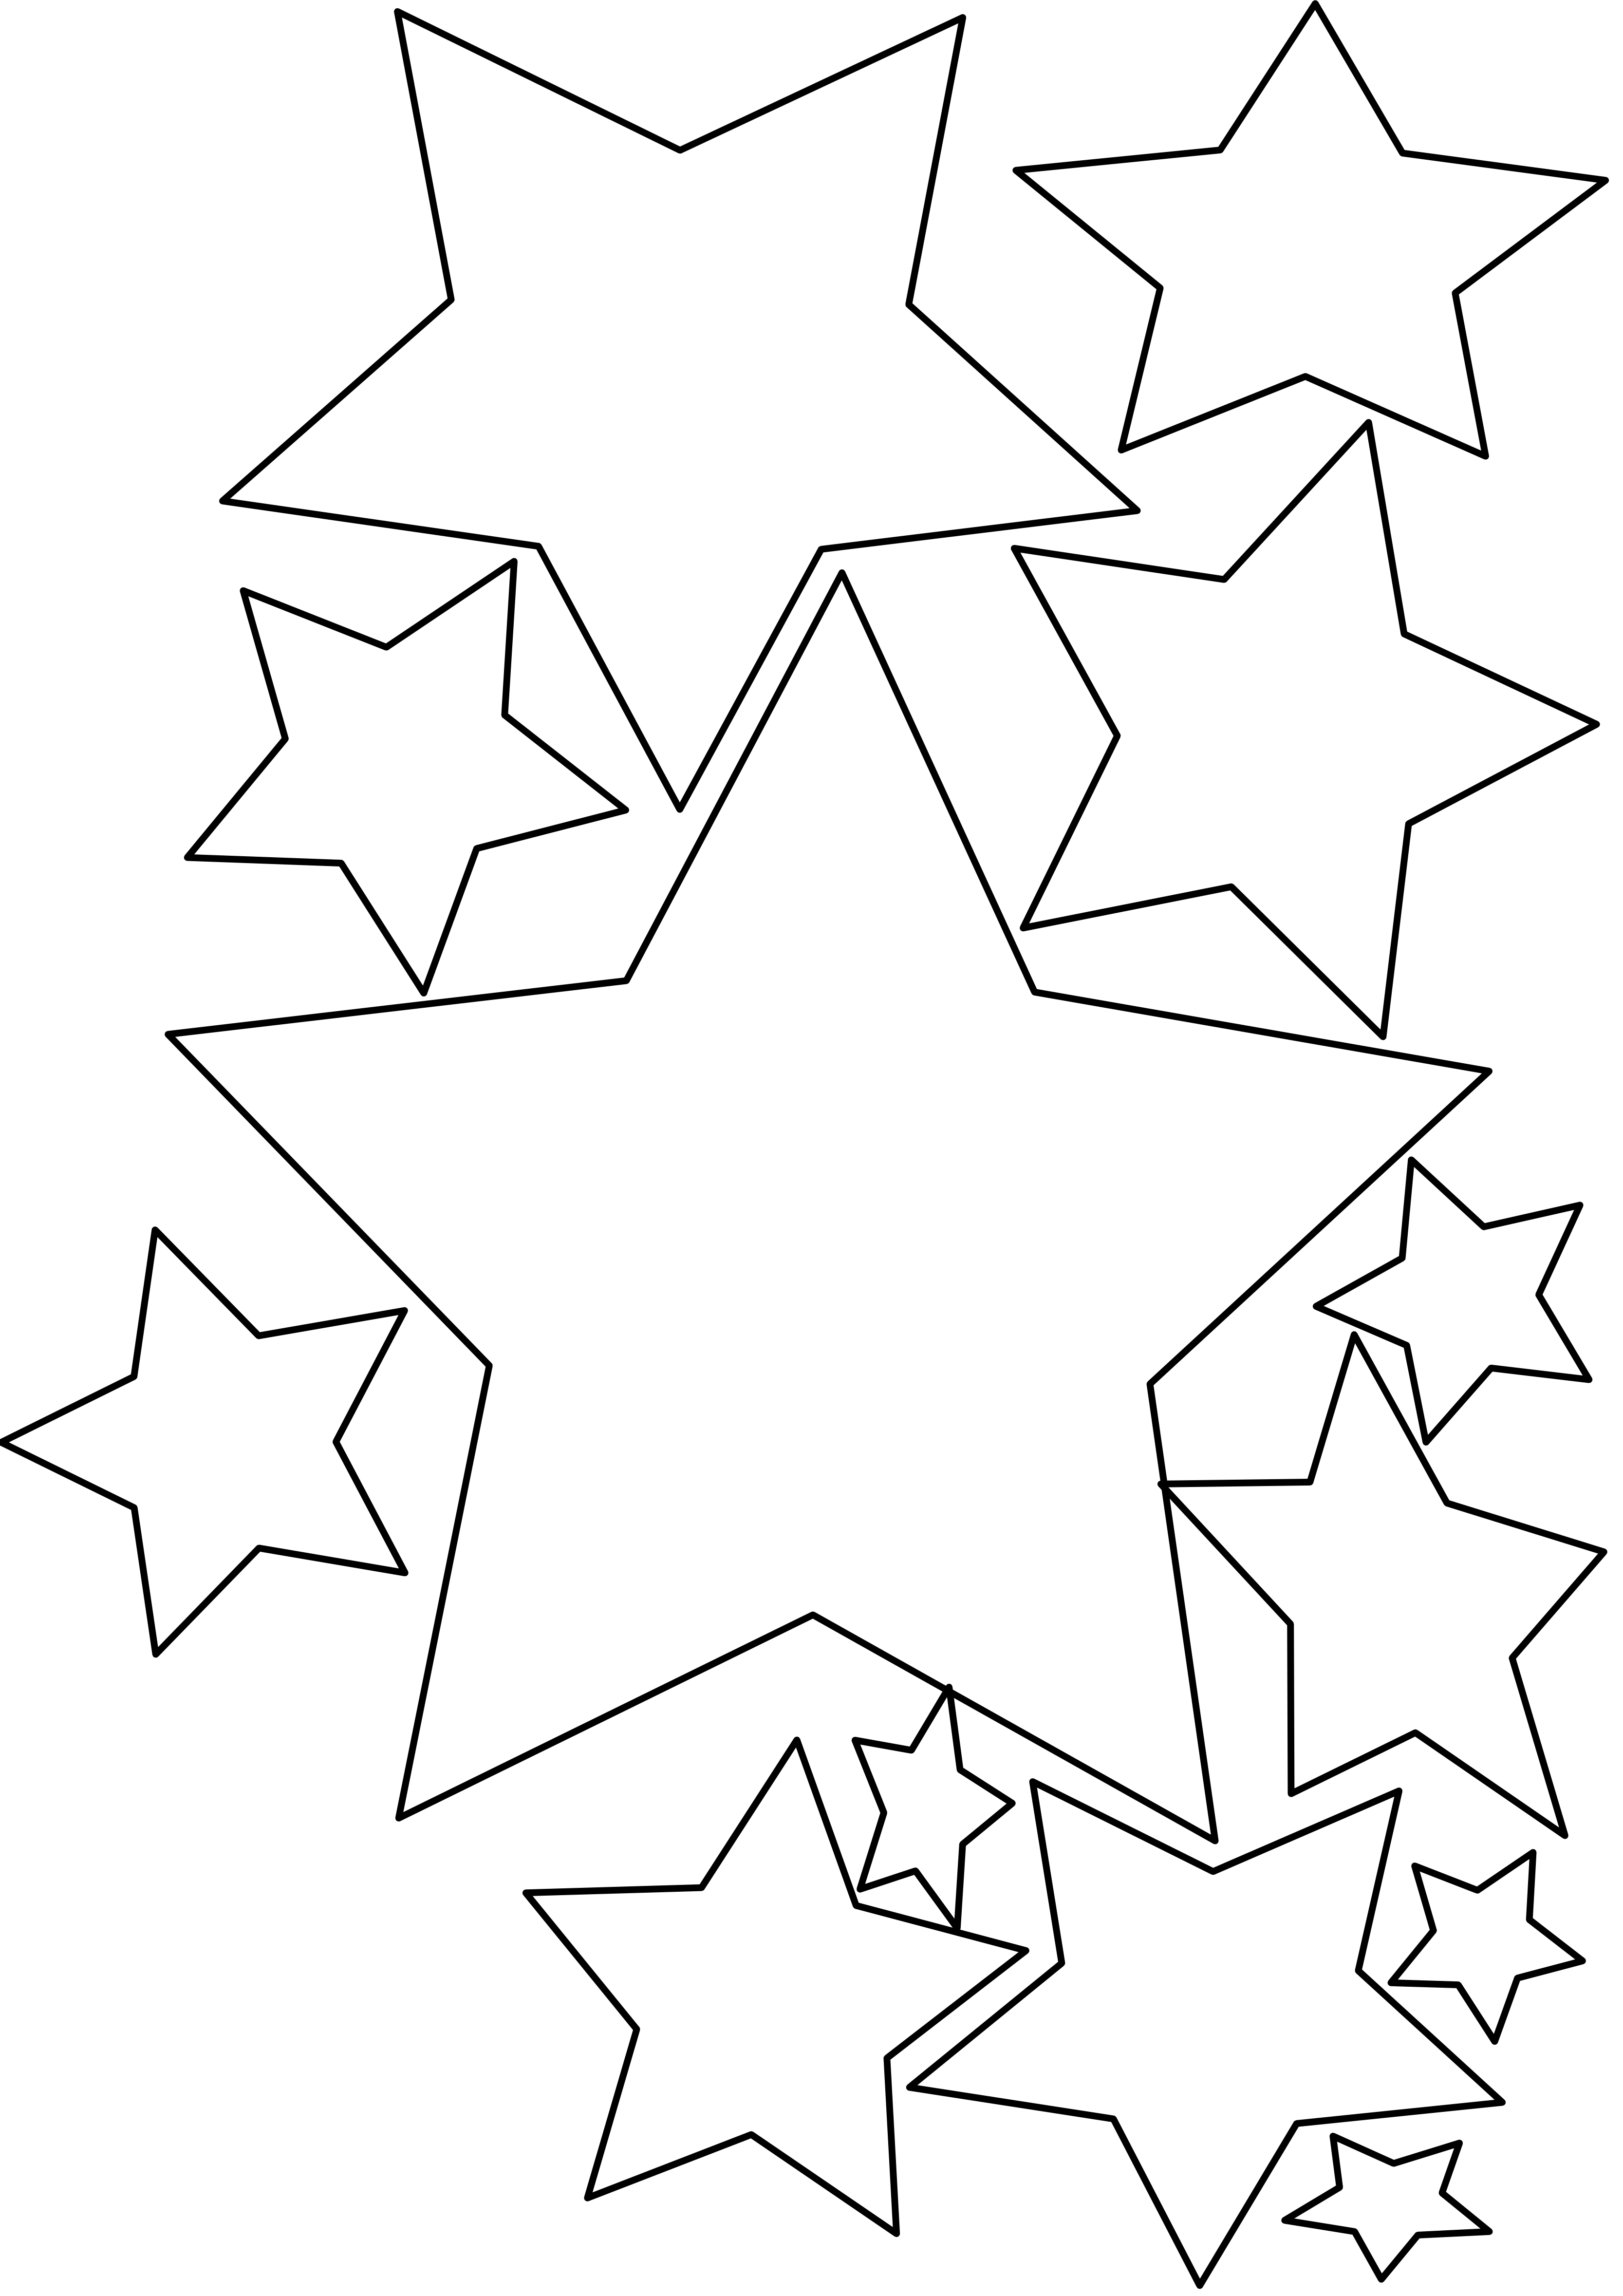 Clipart star black and white jpg freeuse Christmas Star Clip Art Black And White | Clipart Panda - Free ... jpg freeuse